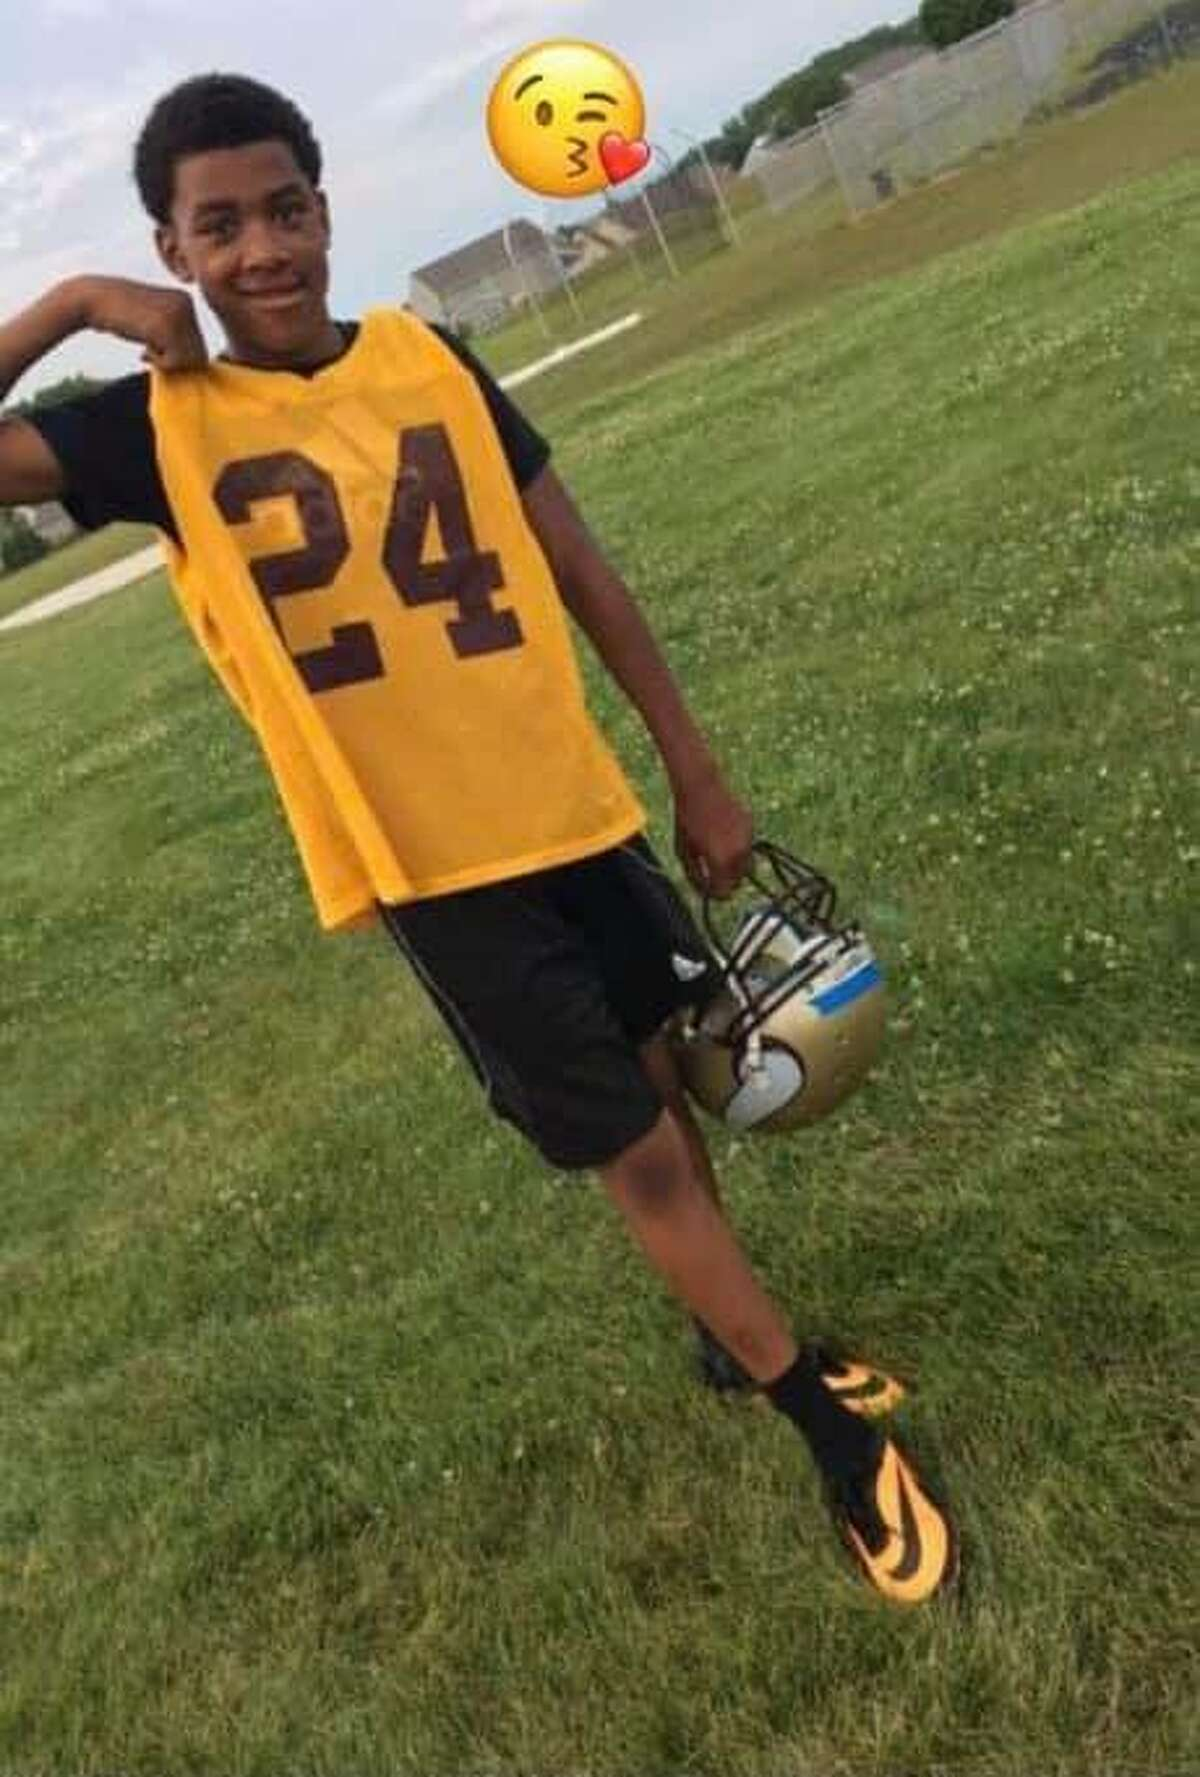 Andrell Lamon, 17, was shot dead Monday night at a Sunnyside convenience store when he confronted a gunman holding people hostage. The teen's family moved to Houston from Milwaukee to escape gun violence, his aunt said.